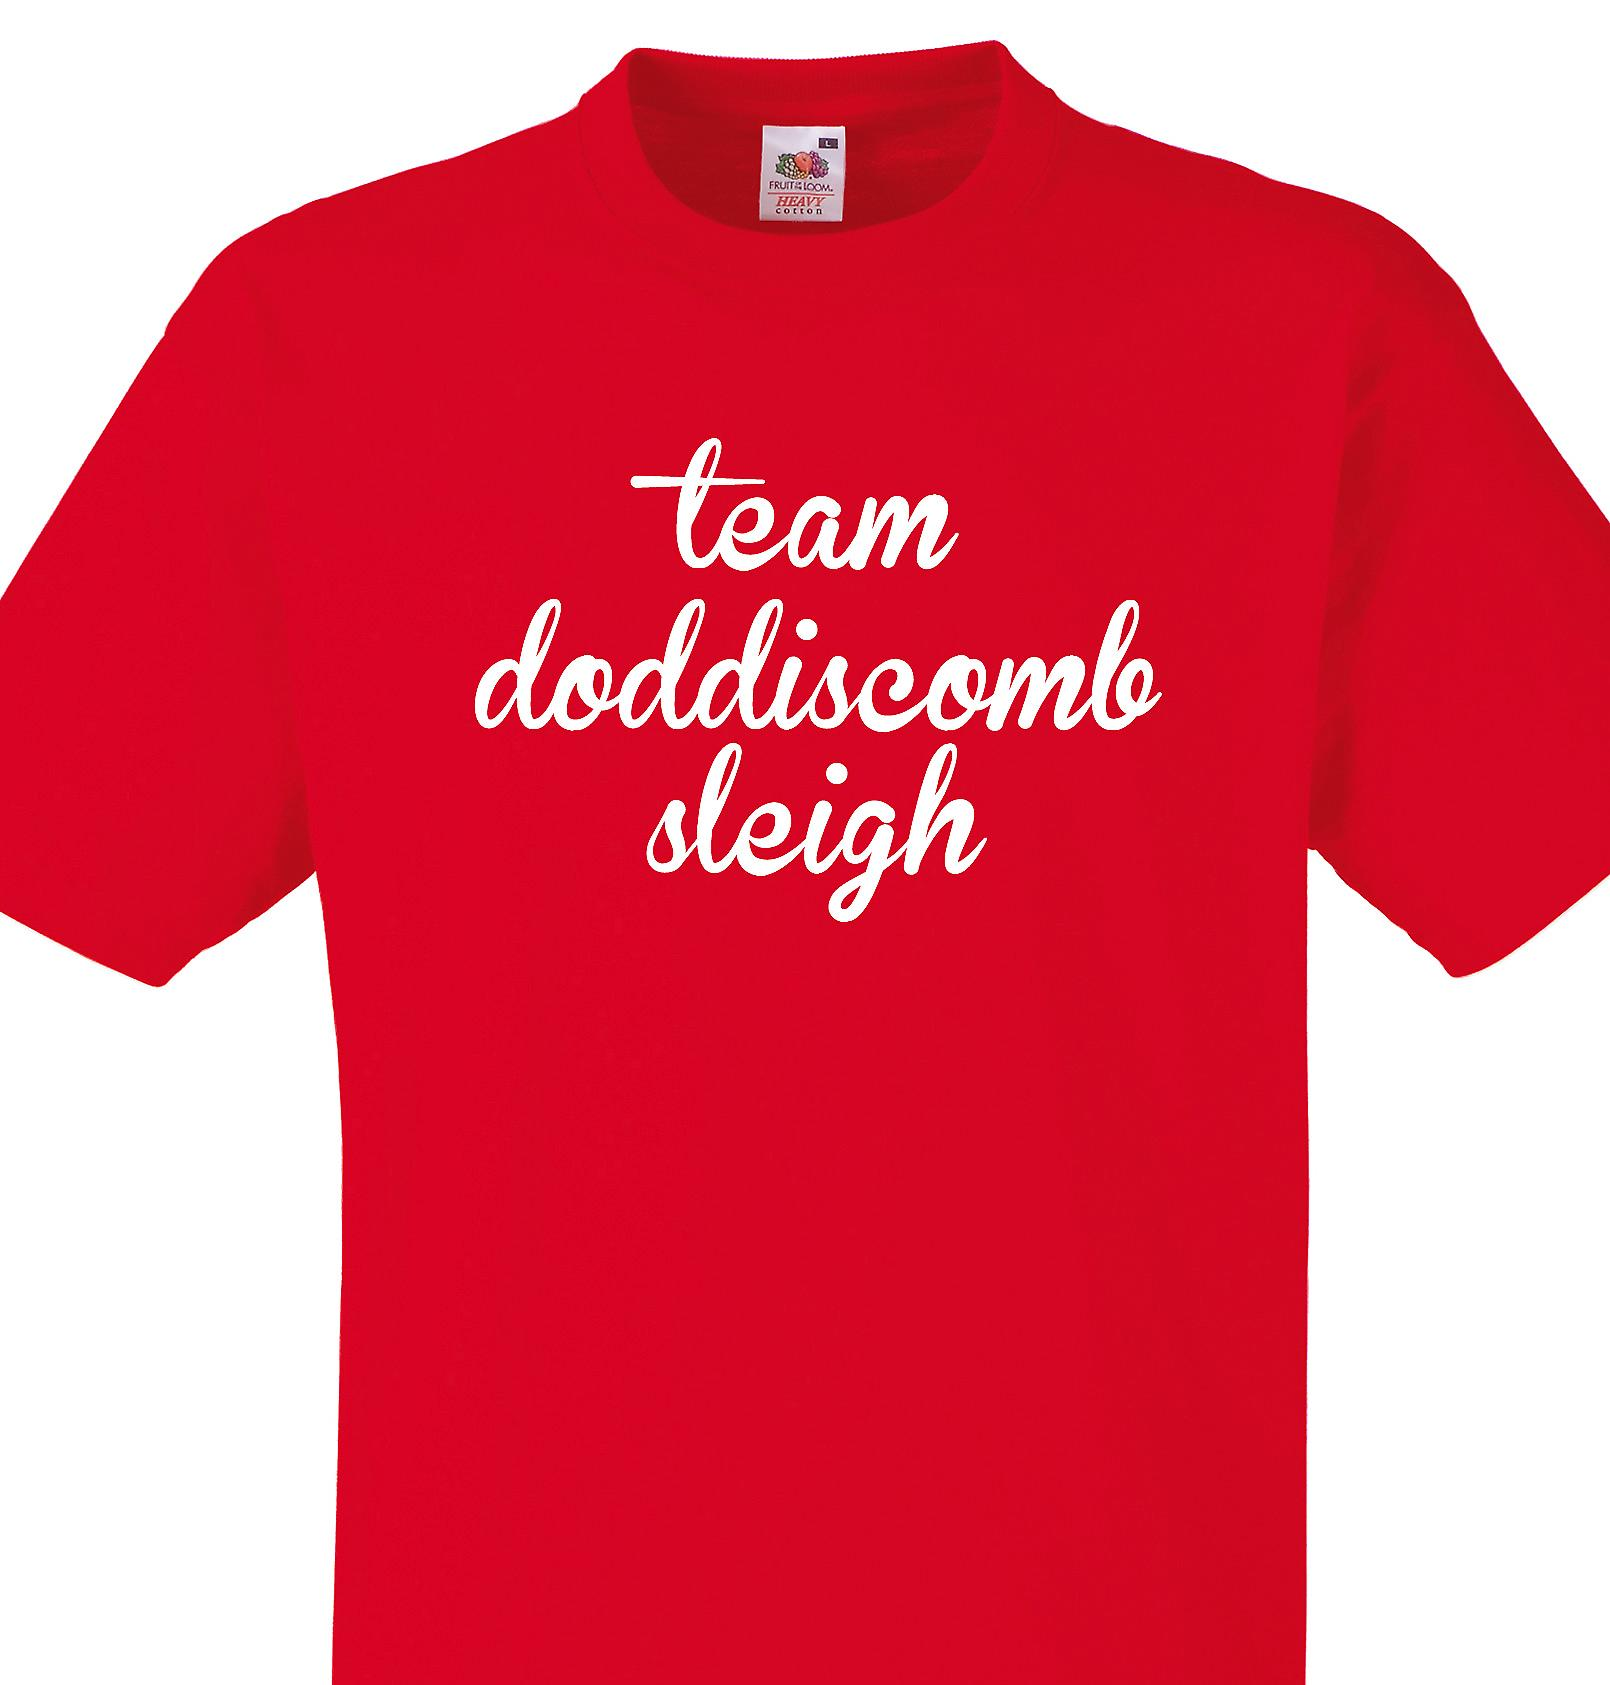 Team Doddiscombsleigh Red T shirt